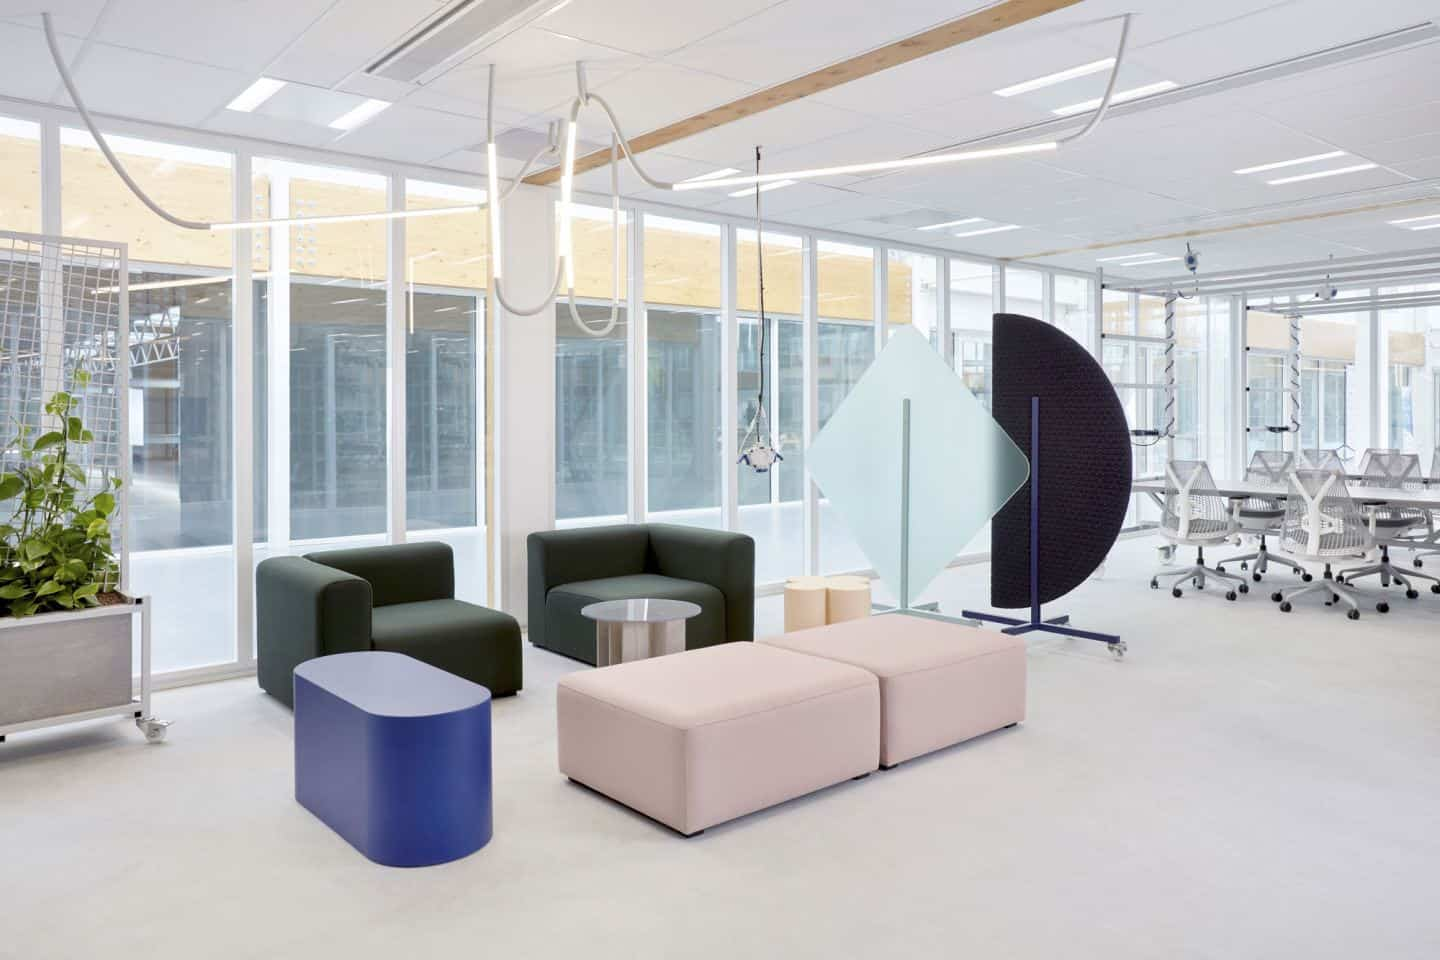 Protective Office Screens for the post-pandemic workplace by Dutch Invertuals used in an office seating area